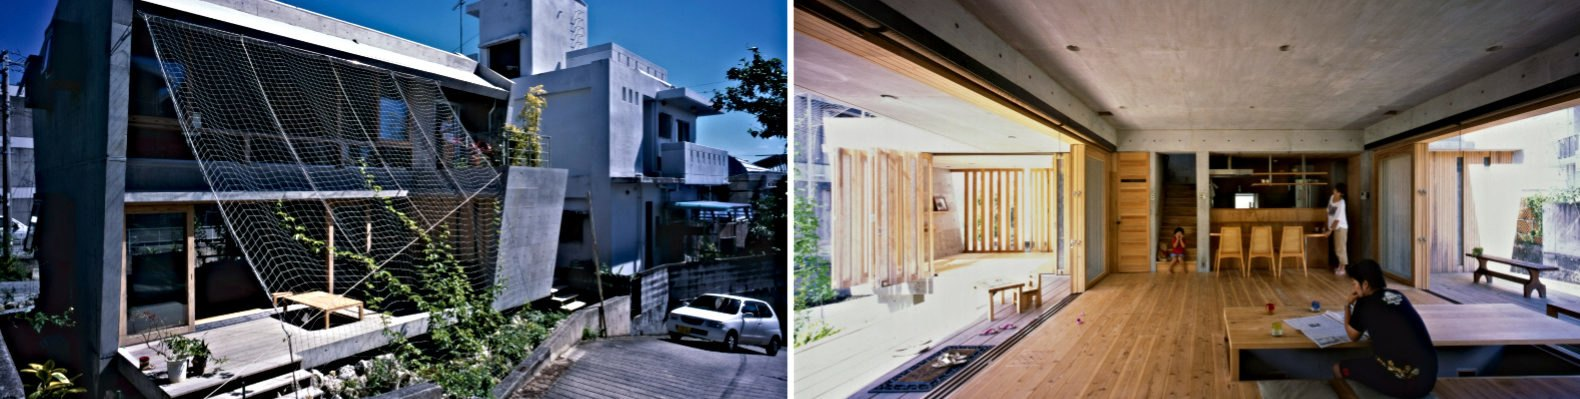 dual photos of home with mesh walls and open interior